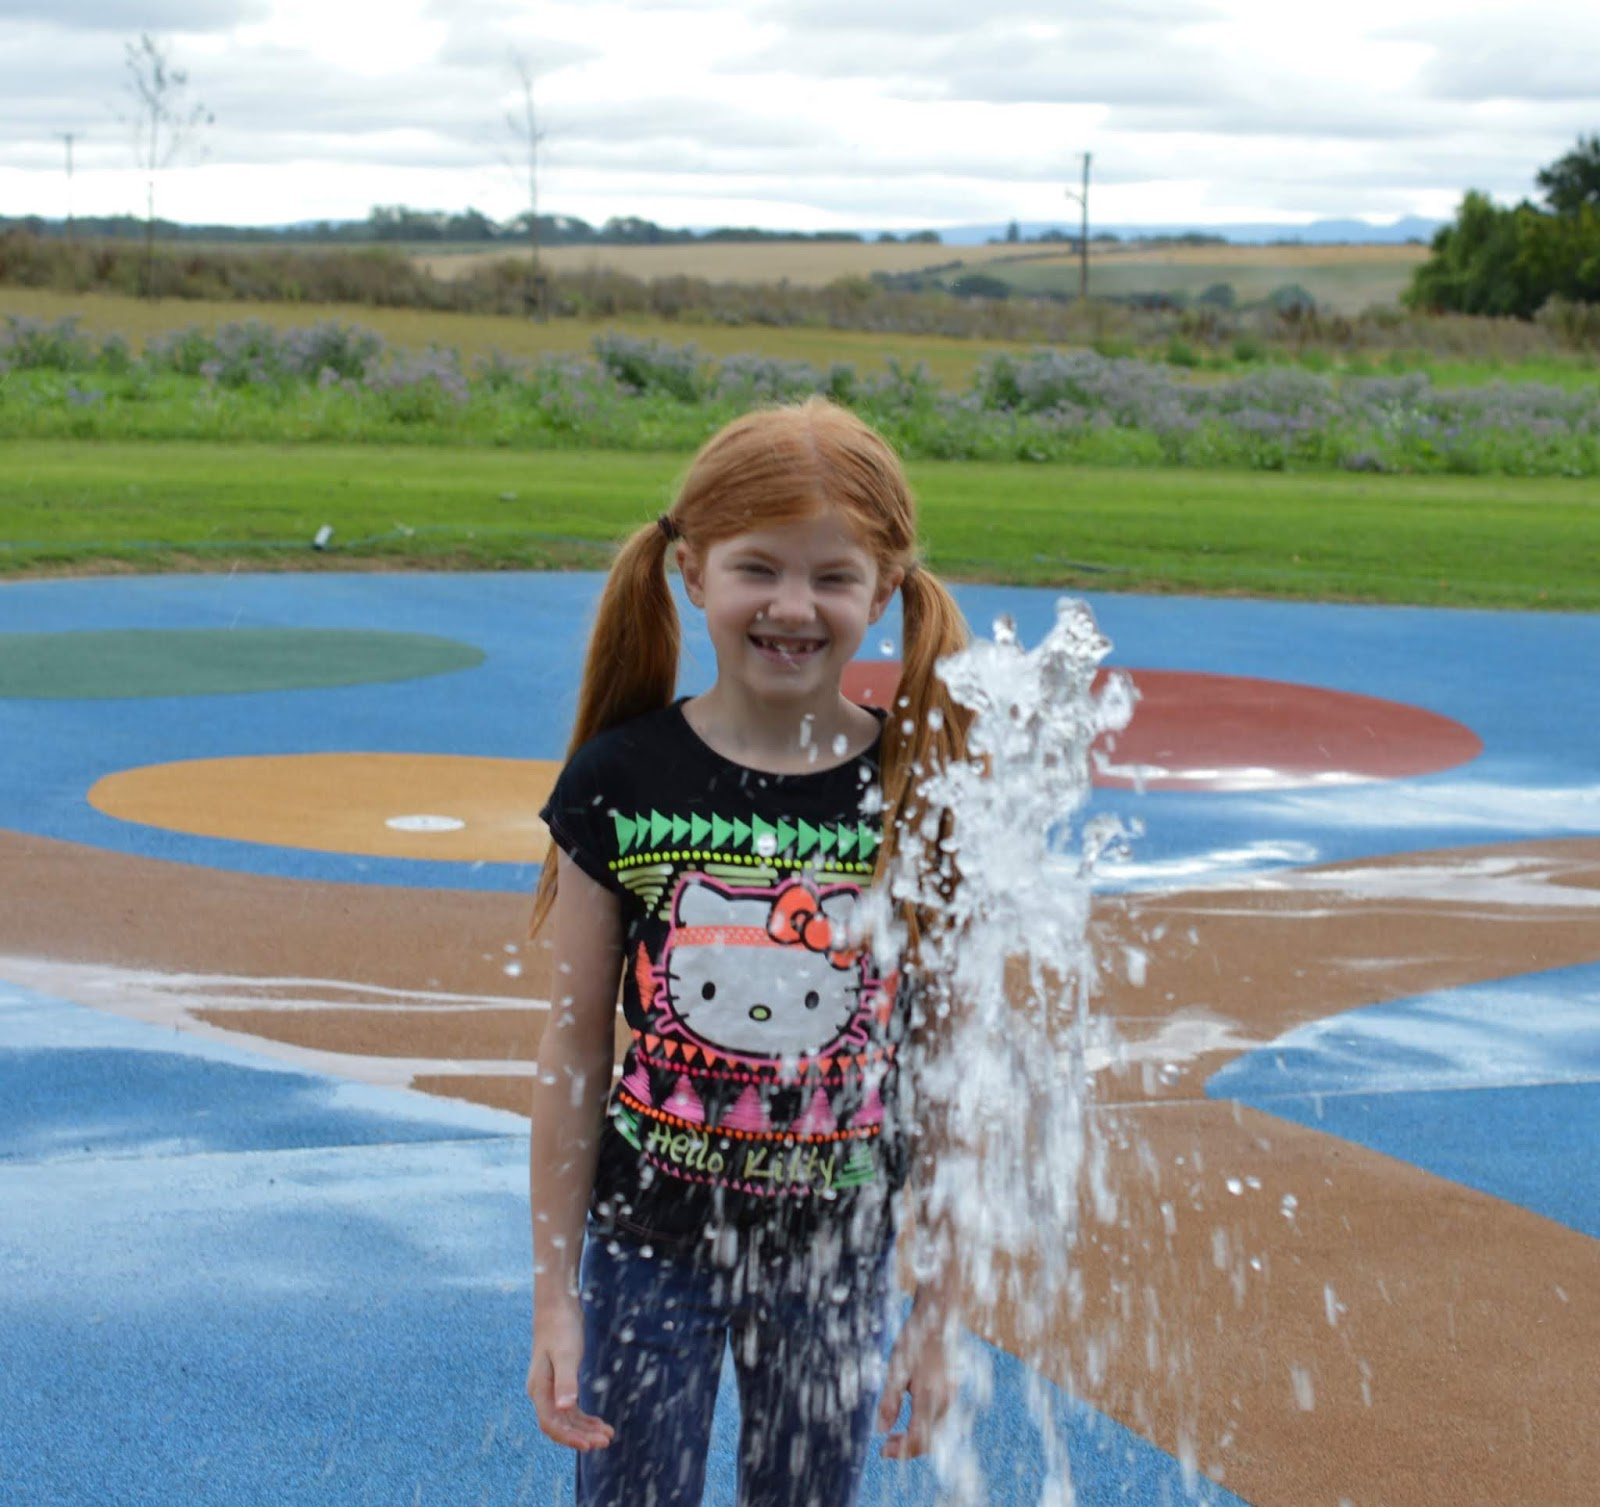 A Luxury Family Staycation at Rockliffe Hall Hotel  - water play area